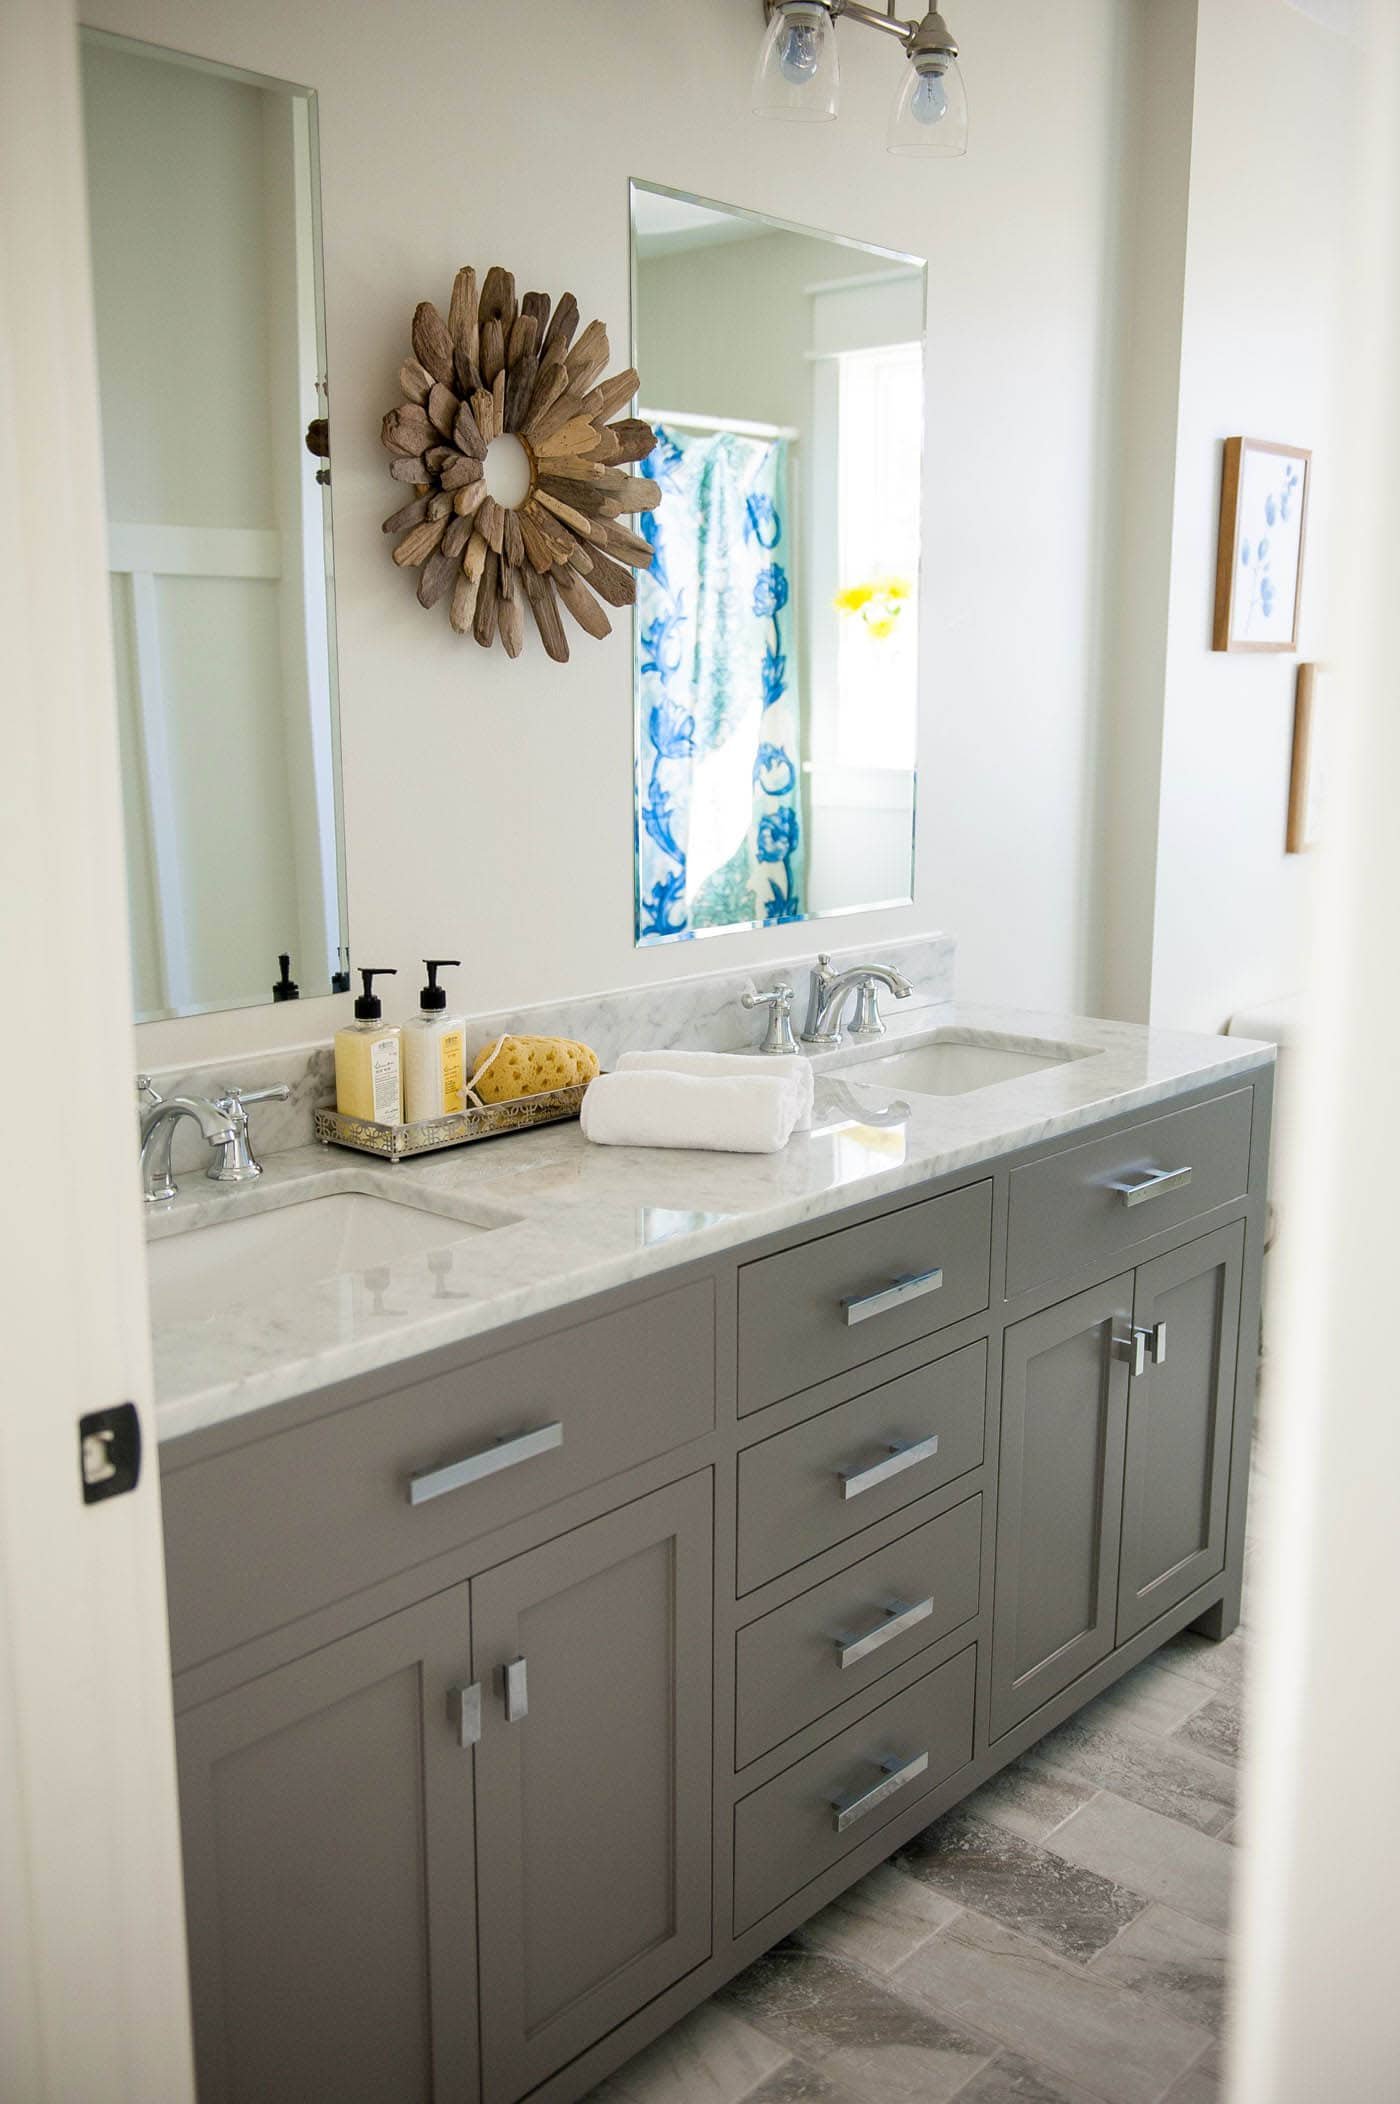 gray bathroom vanity, find out where to buy this exact vanity online. Click to see our bathroom vanity shopping guide and full resources on the blog. bathroom vanity ideas | double sink vanities | bathroom renovation | bathroom remodel | farmhouse bathroom | master bath remodel #bathroomdecor #bathroomidea #bathroomdesigns